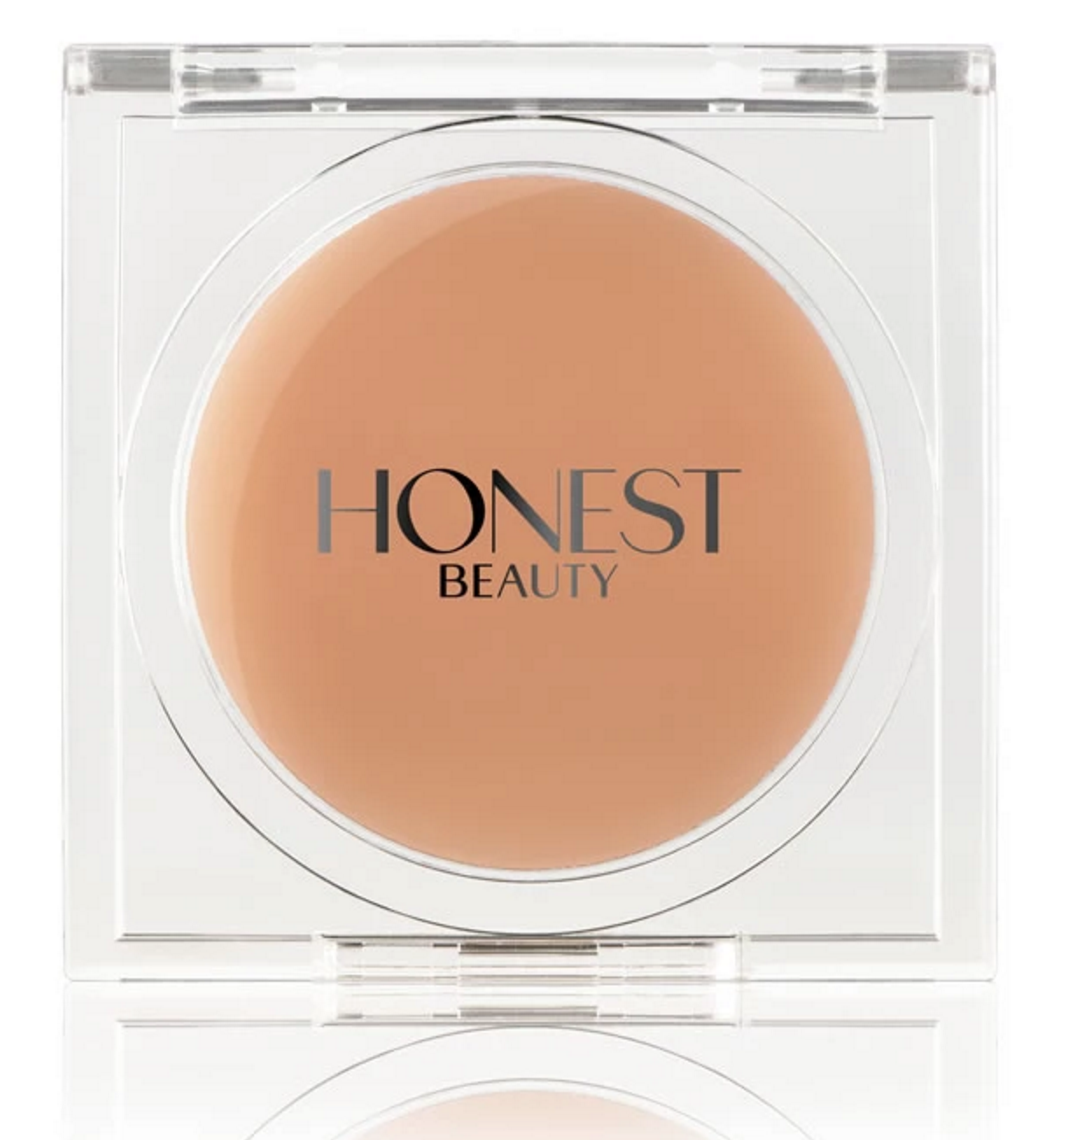 HONEST BEAUTY. IS IT PRO WORTHY?